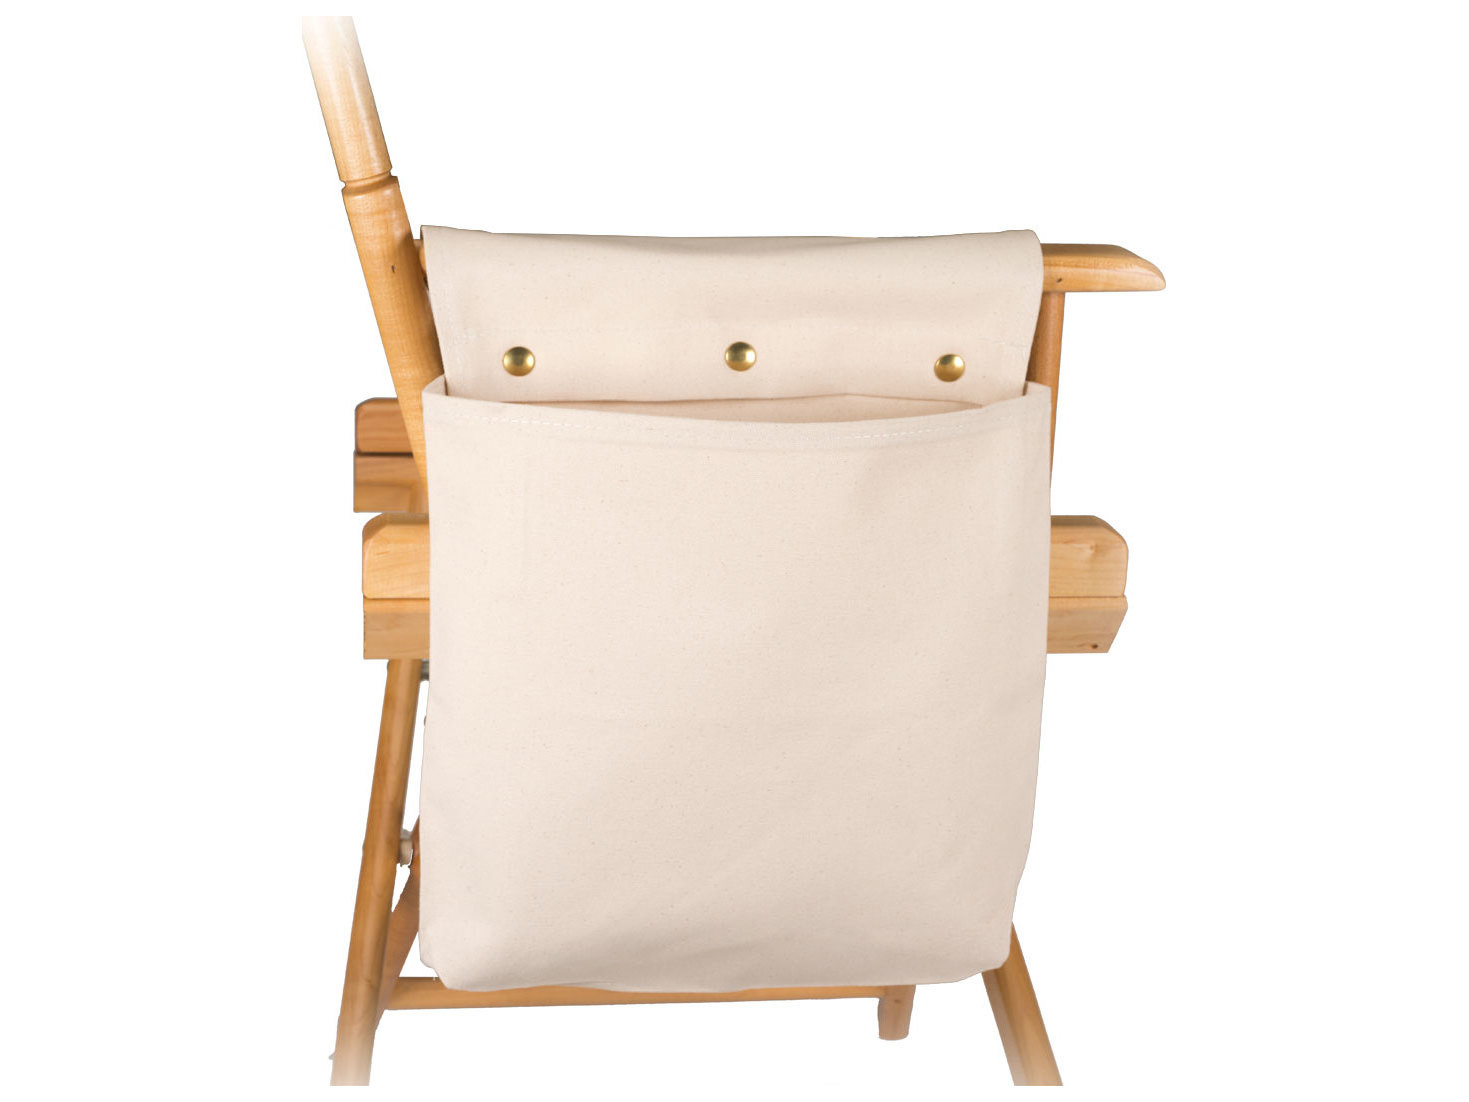 Telescope Casual Director Chair Canvas Script Bags 1bag